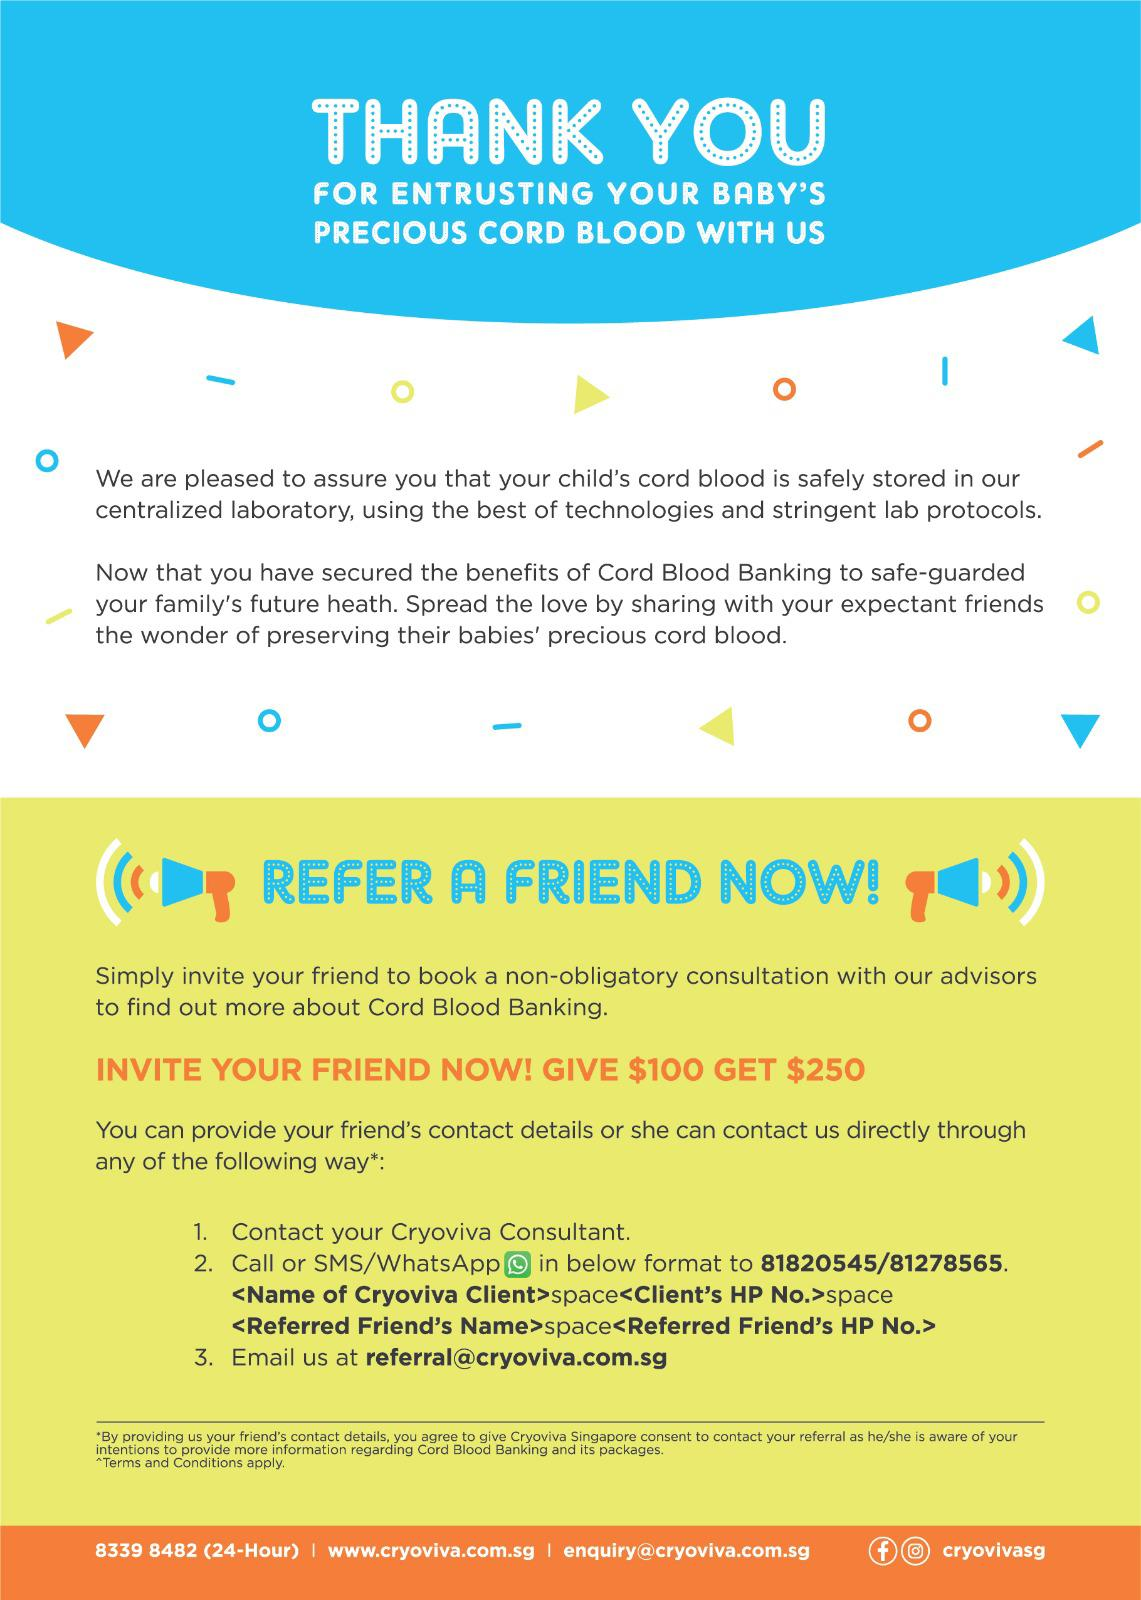 Refer A Friend Now